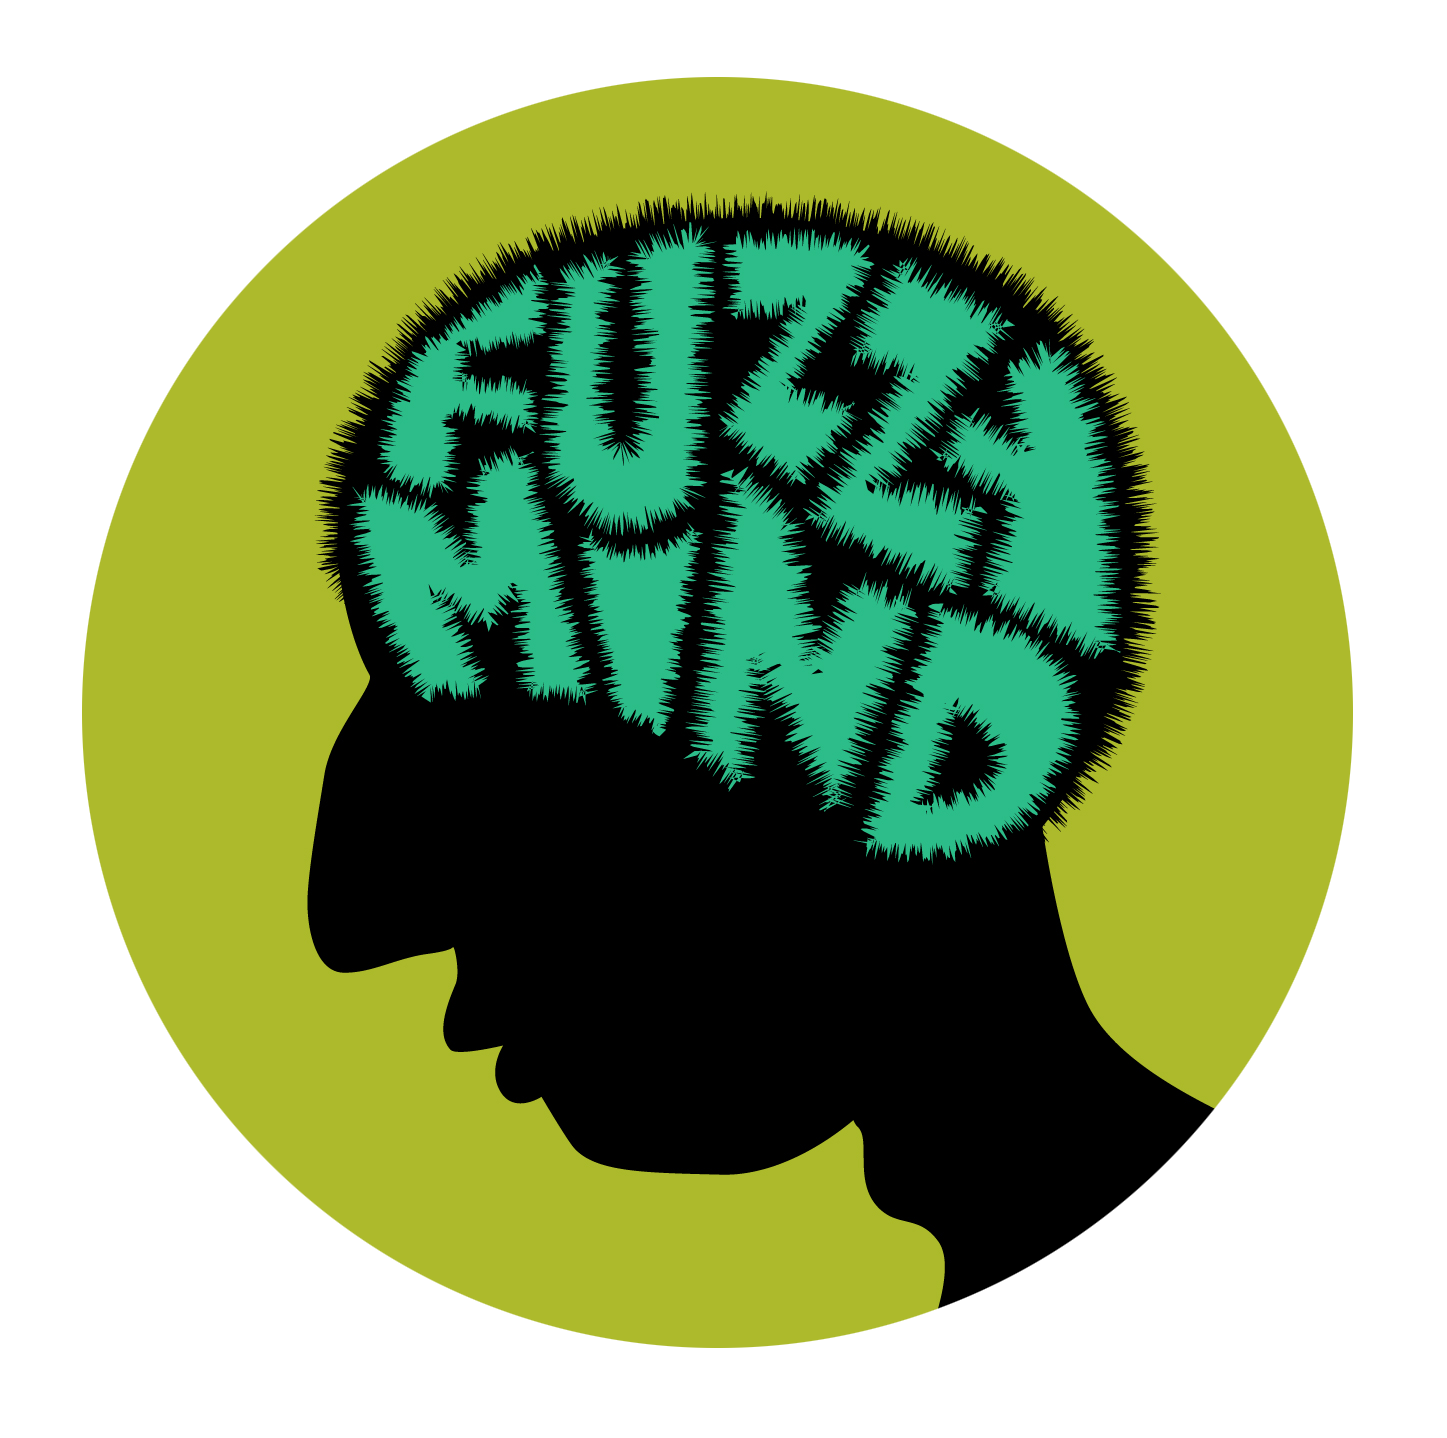 FUZZY MIND RECORDS